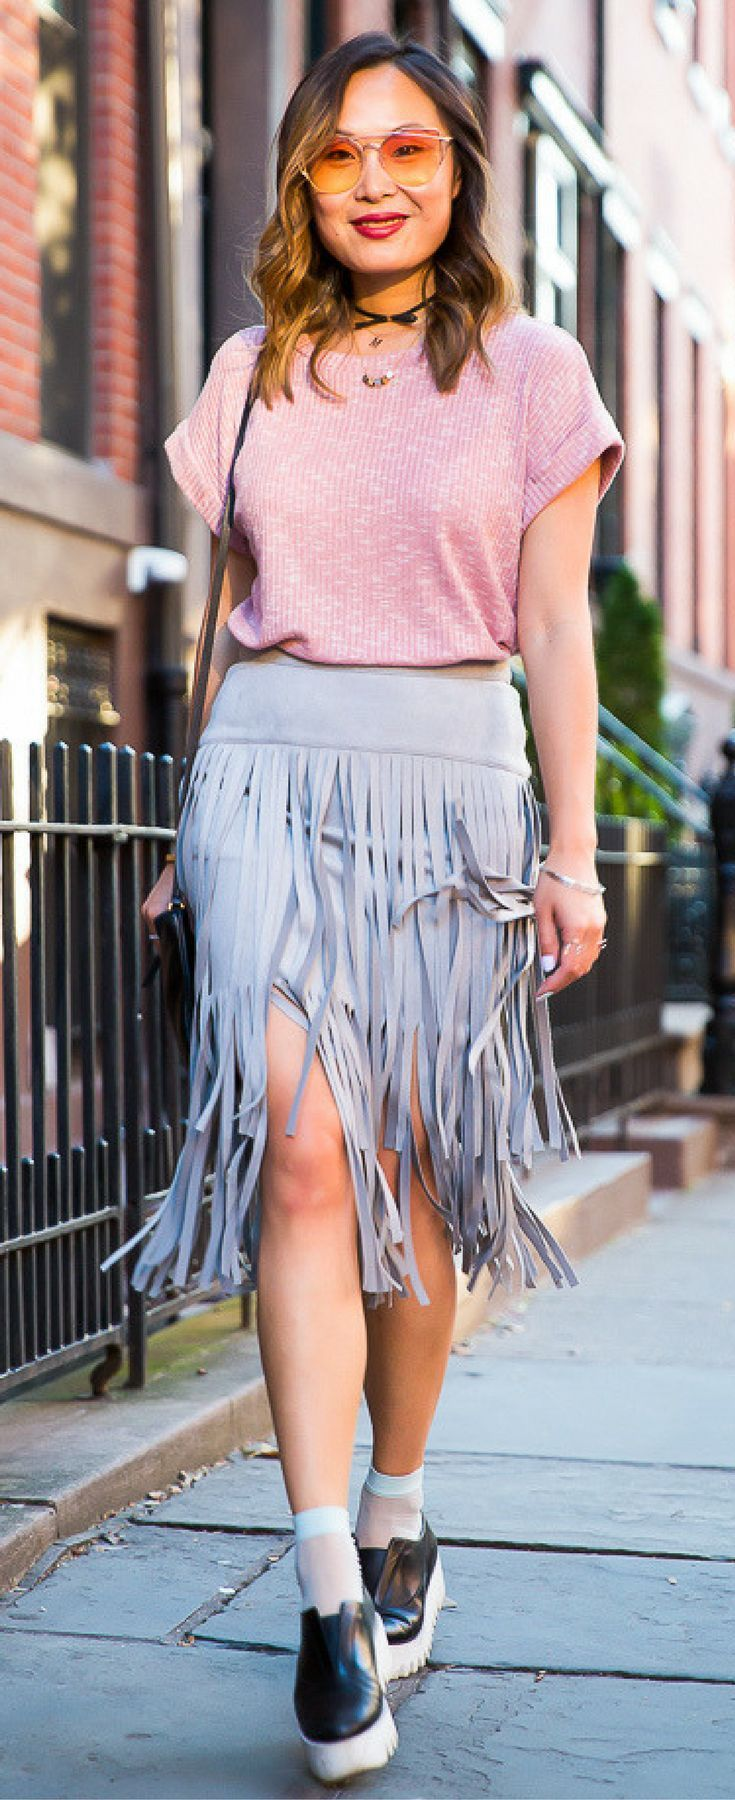 to wear - Outfits trendy pinterest photo video